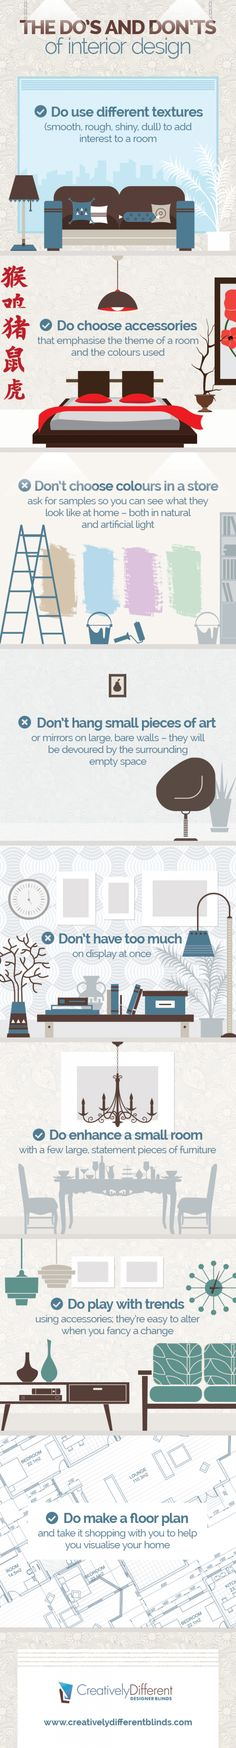 The Do's and Don't of interior design Infographic